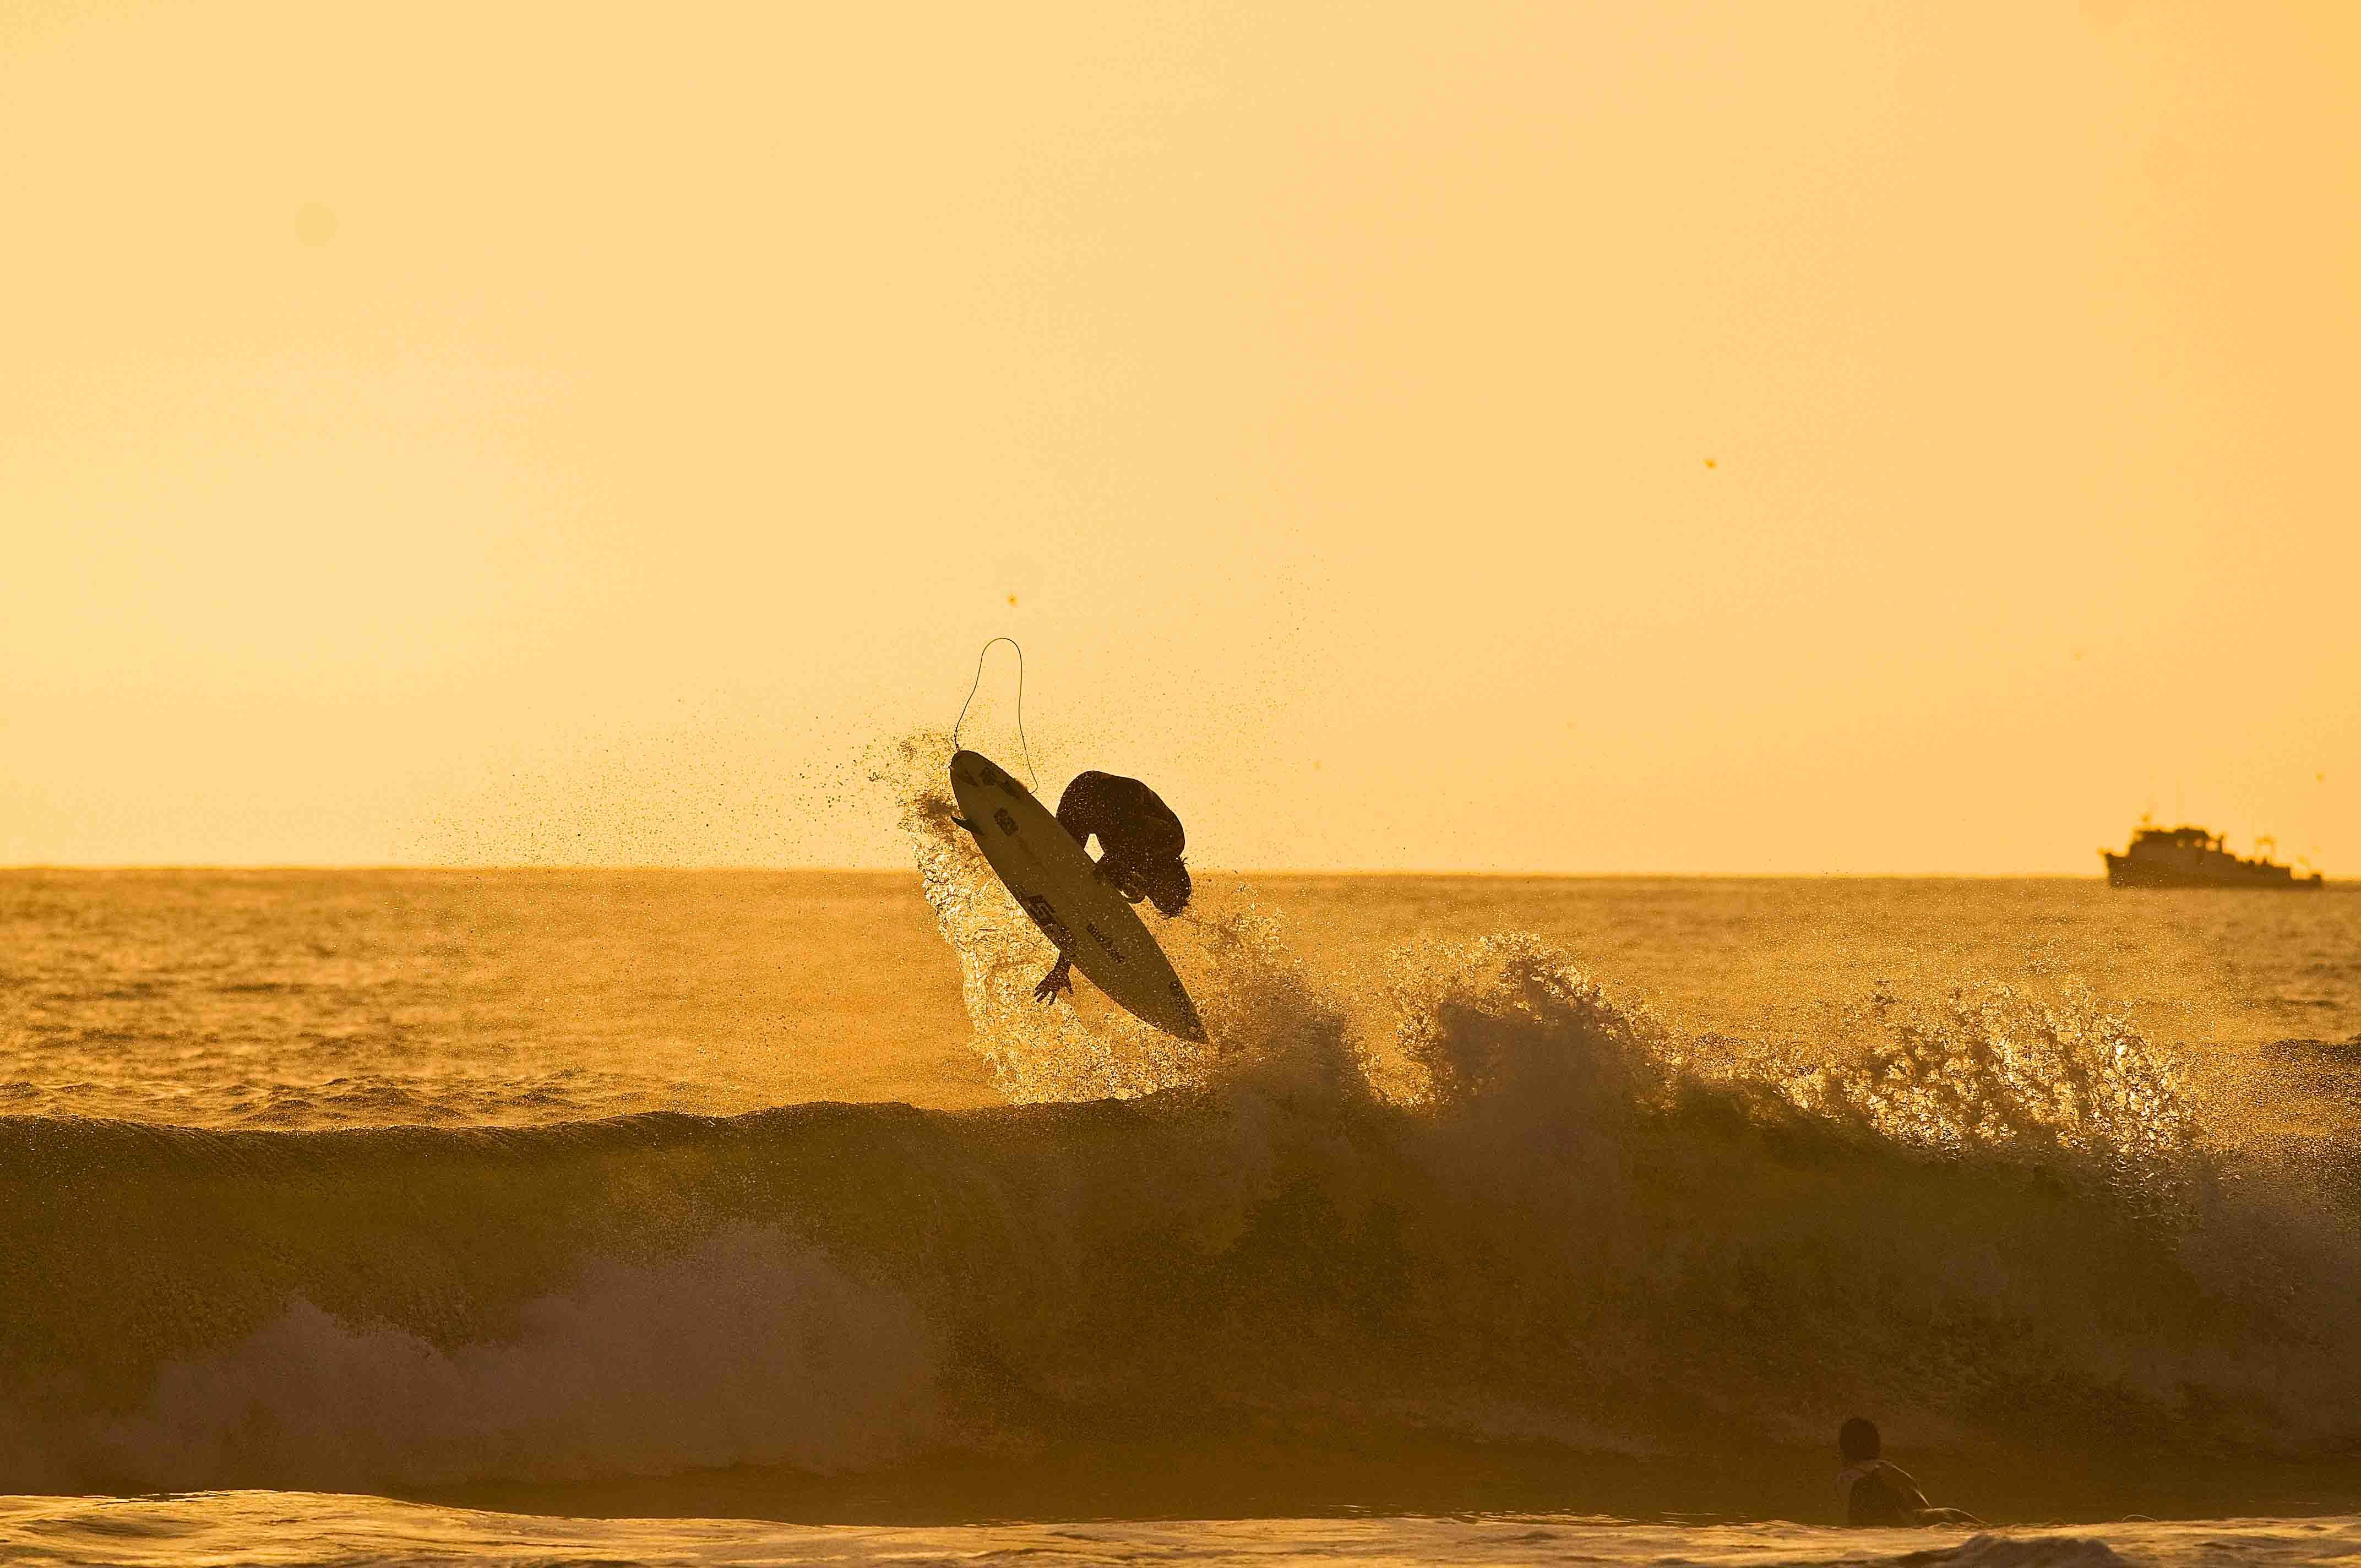 ryan-carlson-riding-the-lunasurf-tail-pads-and-leashes